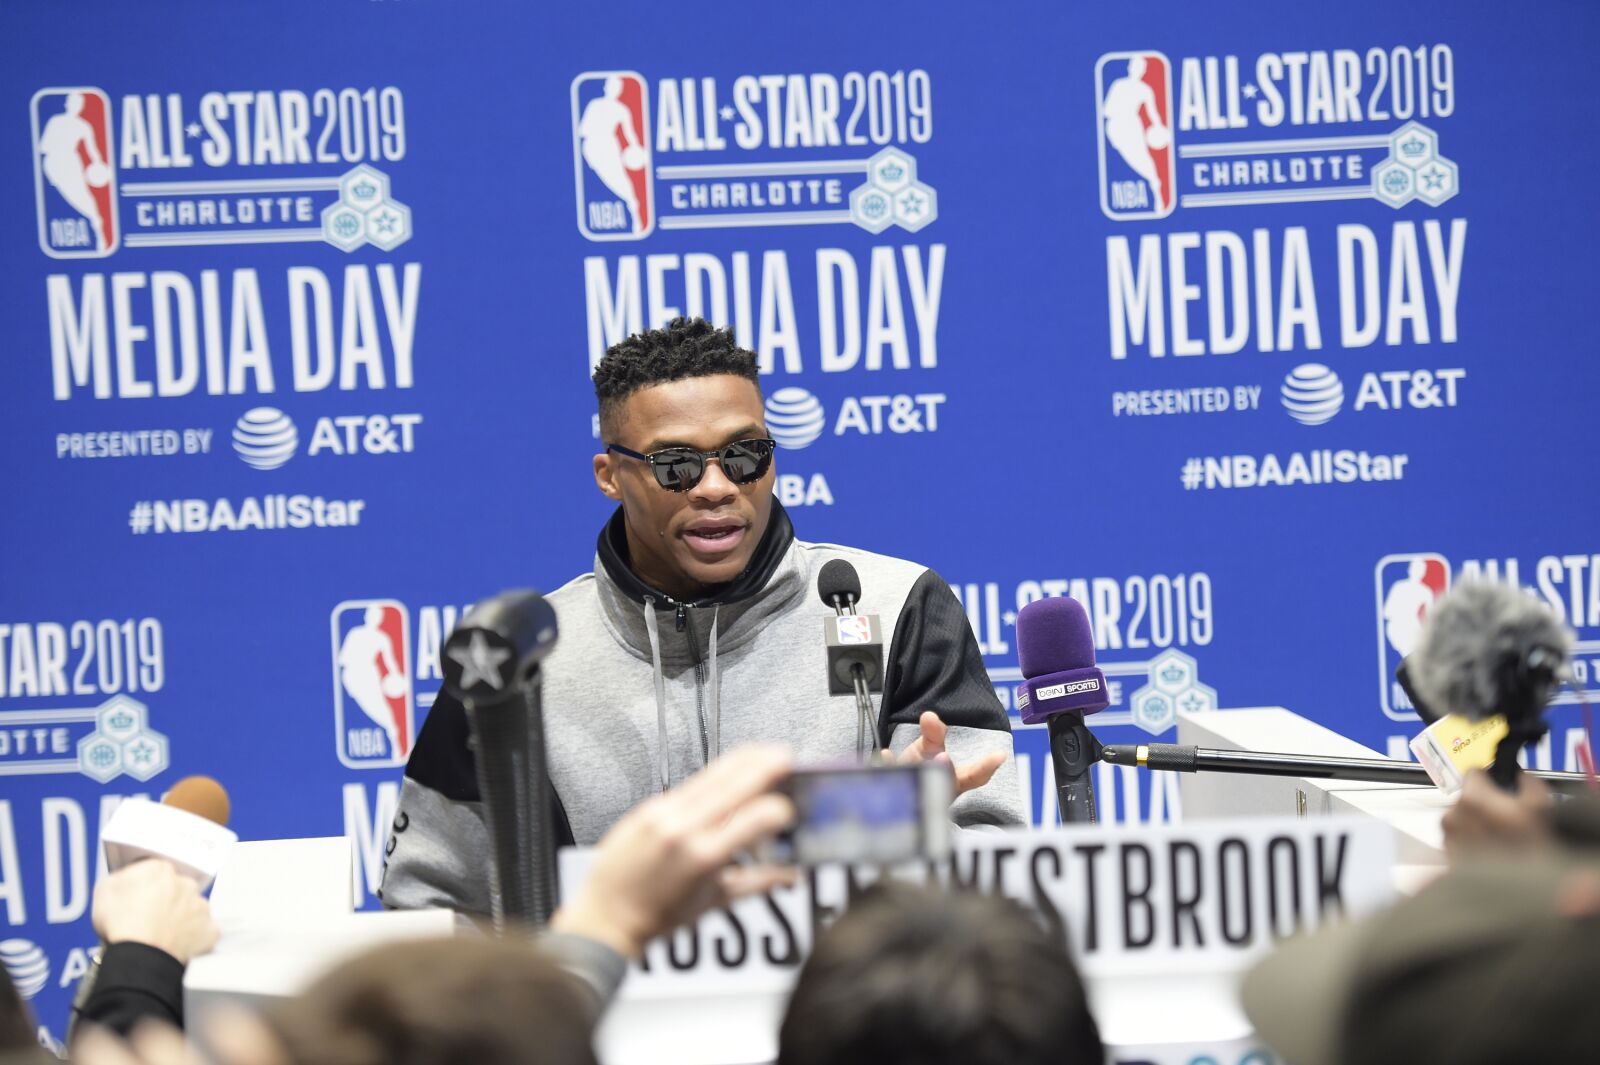 OKC Thunder star Russell Westbrook active All-Star weekend: fashion, family, PG, KD, GOATs and more